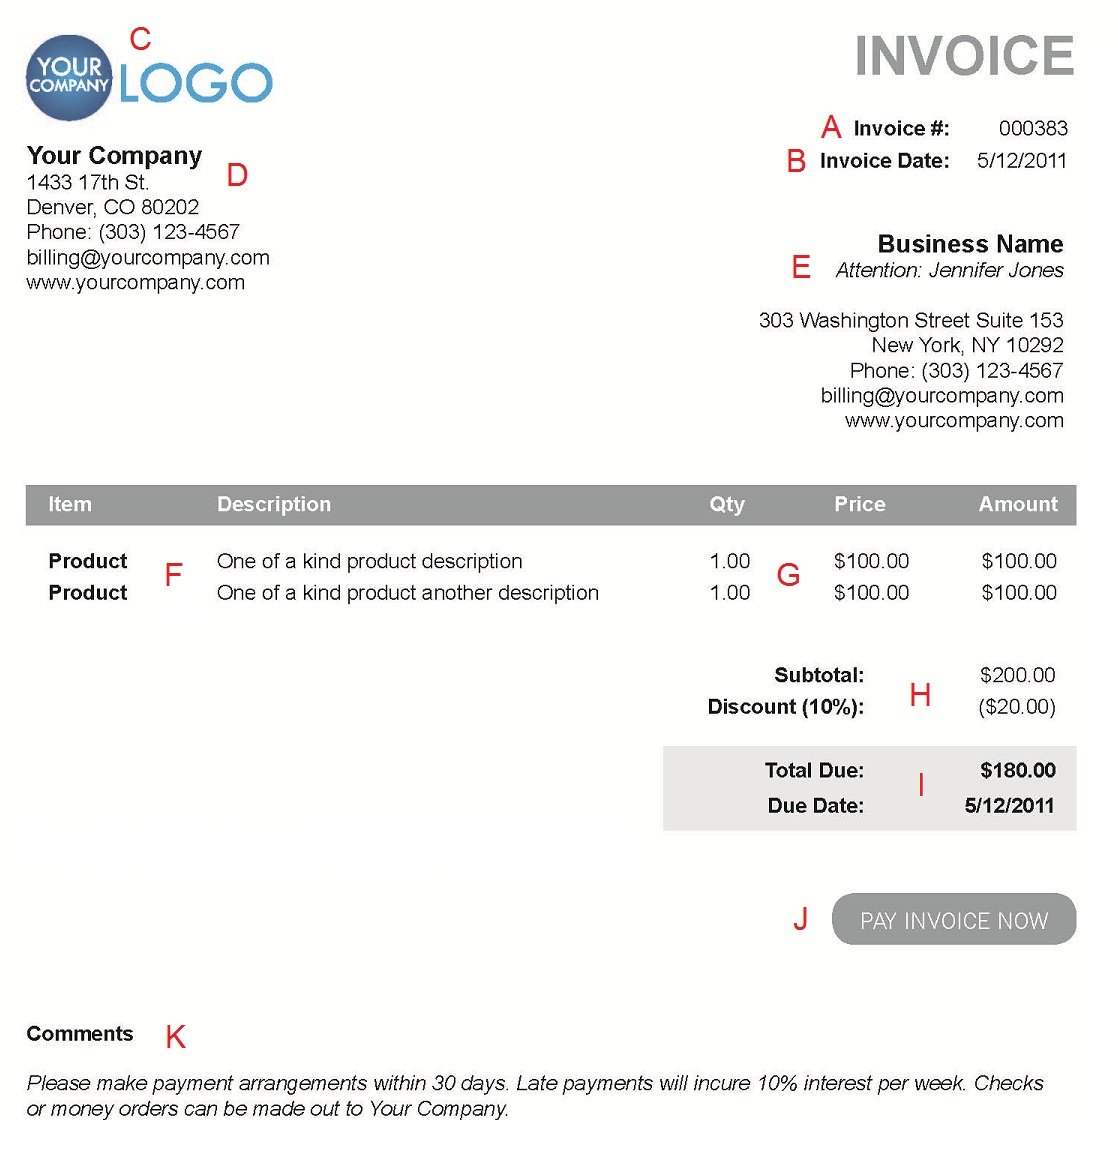 Pigbrotherus  Surprising The  Different Sections Of An Electronic Payment Invoice With Likable A  With Amazing Free Online Receipt Template Also Proof Of Purchase Receipt Template In Addition Proof Of Payment Receipt And Lost Usps Receipt As Well As Tax Return Receipts Additionally Receipt Excel Template From Paysimplecom With Pigbrotherus  Likable The  Different Sections Of An Electronic Payment Invoice With Amazing A  And Surprising Free Online Receipt Template Also Proof Of Purchase Receipt Template In Addition Proof Of Payment Receipt From Paysimplecom